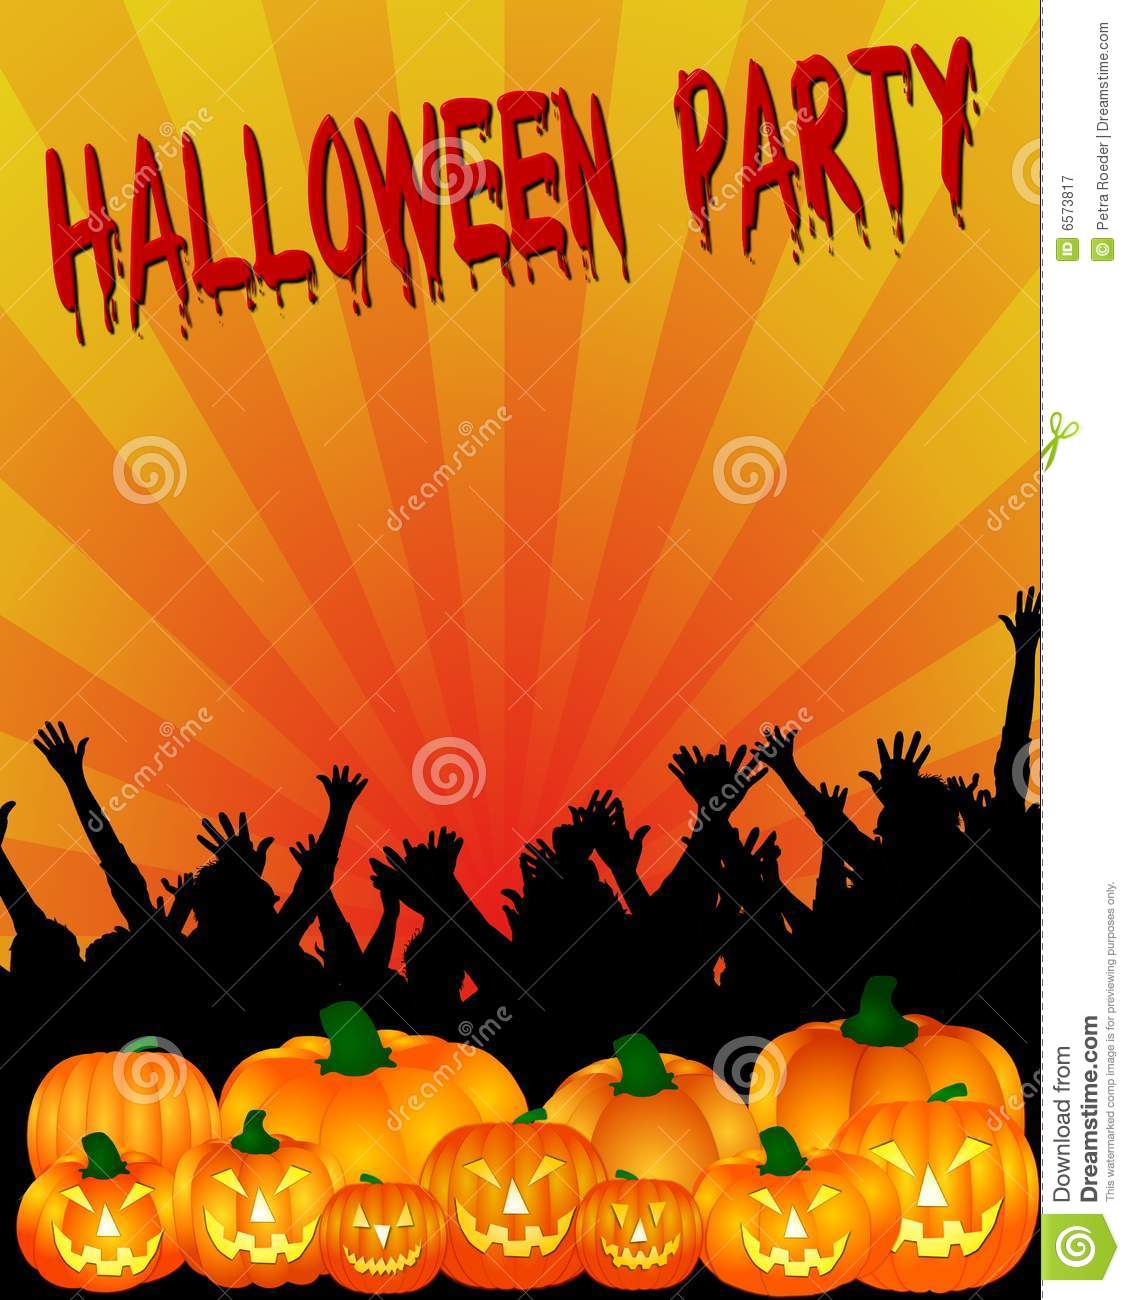 Halloween Party Invitation Cards is great invitation ideas